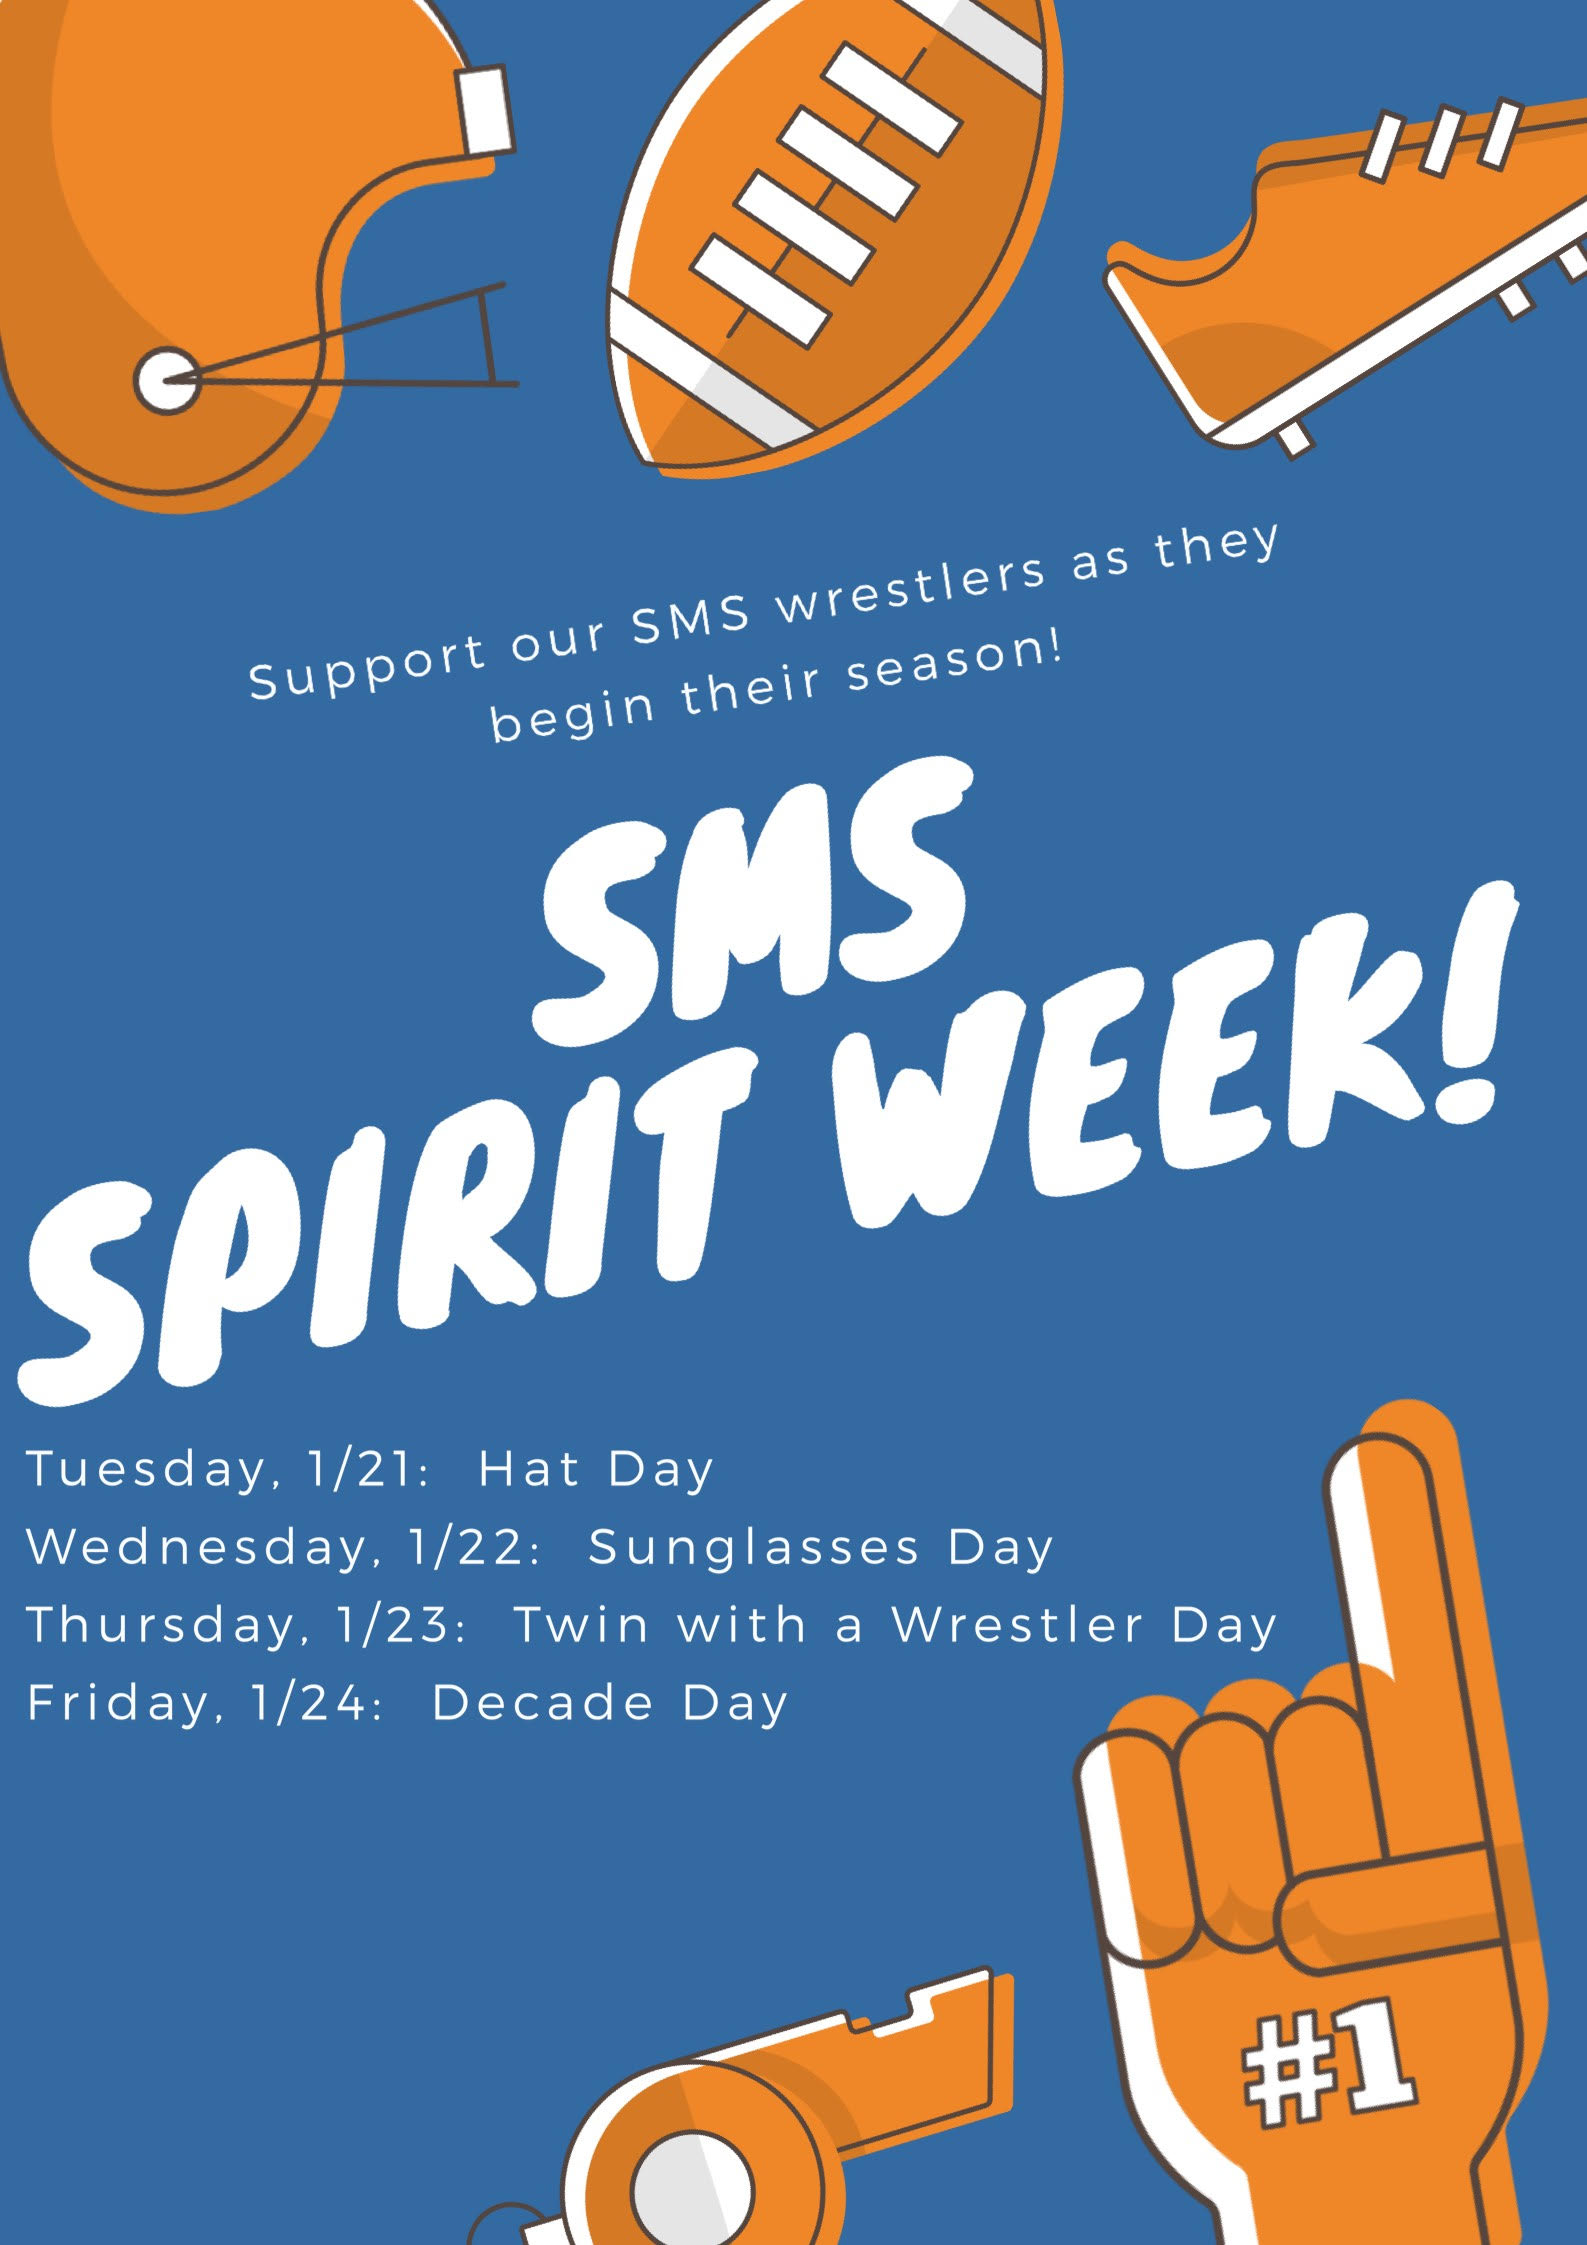 SMS Spirit Week Information supporting our Wrestlers